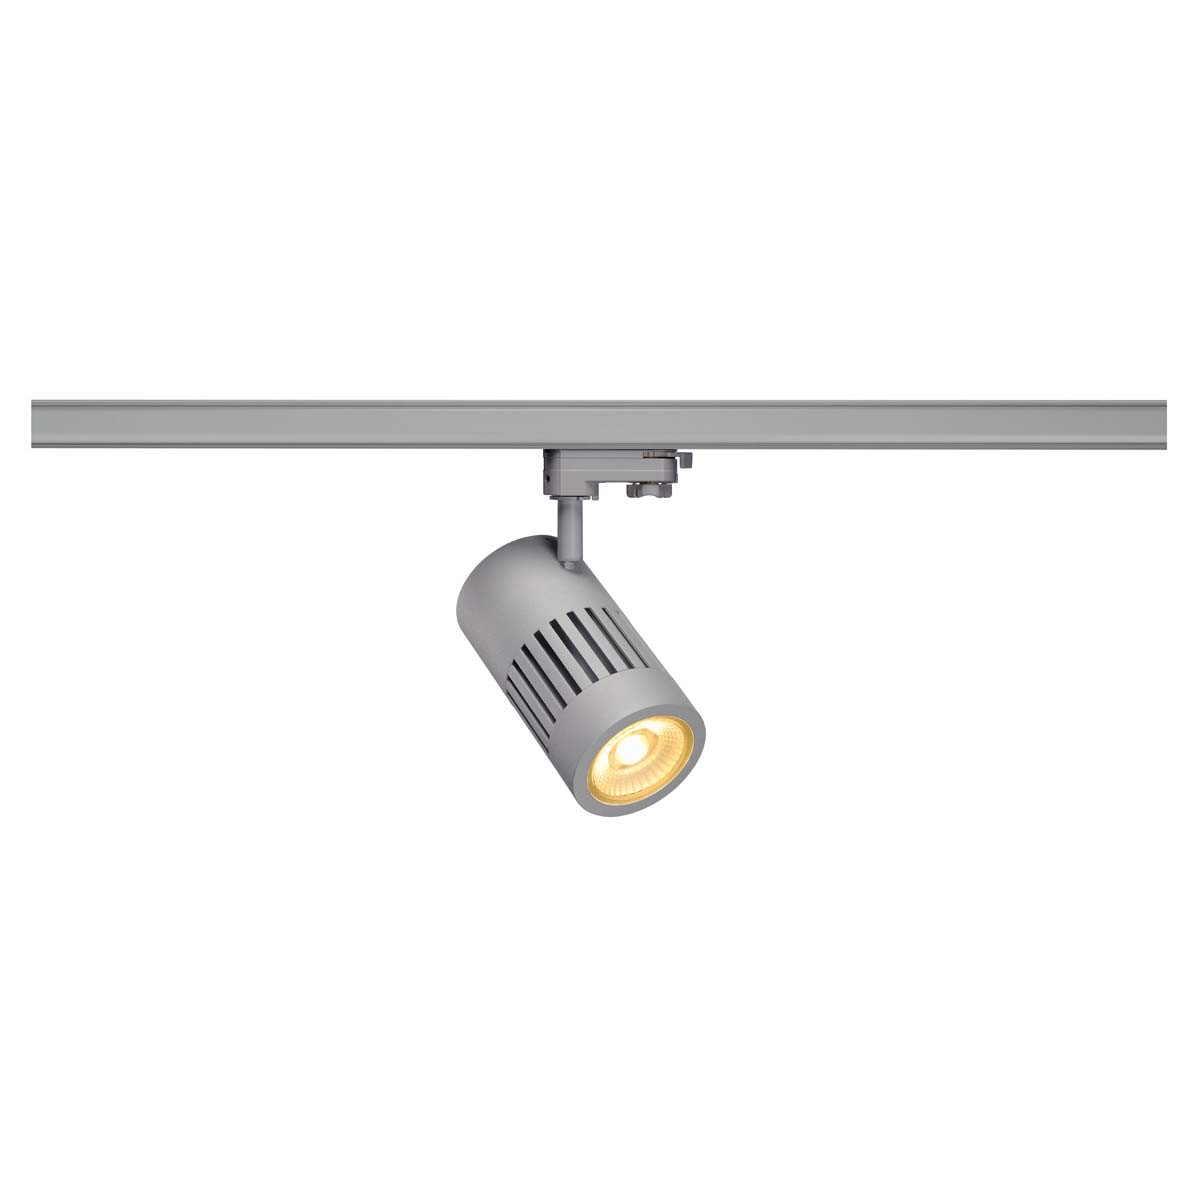 SLV 176014 STRUCTEC LED 24W, round, silver, 3000K, 60°, incl. 3-phase adapter